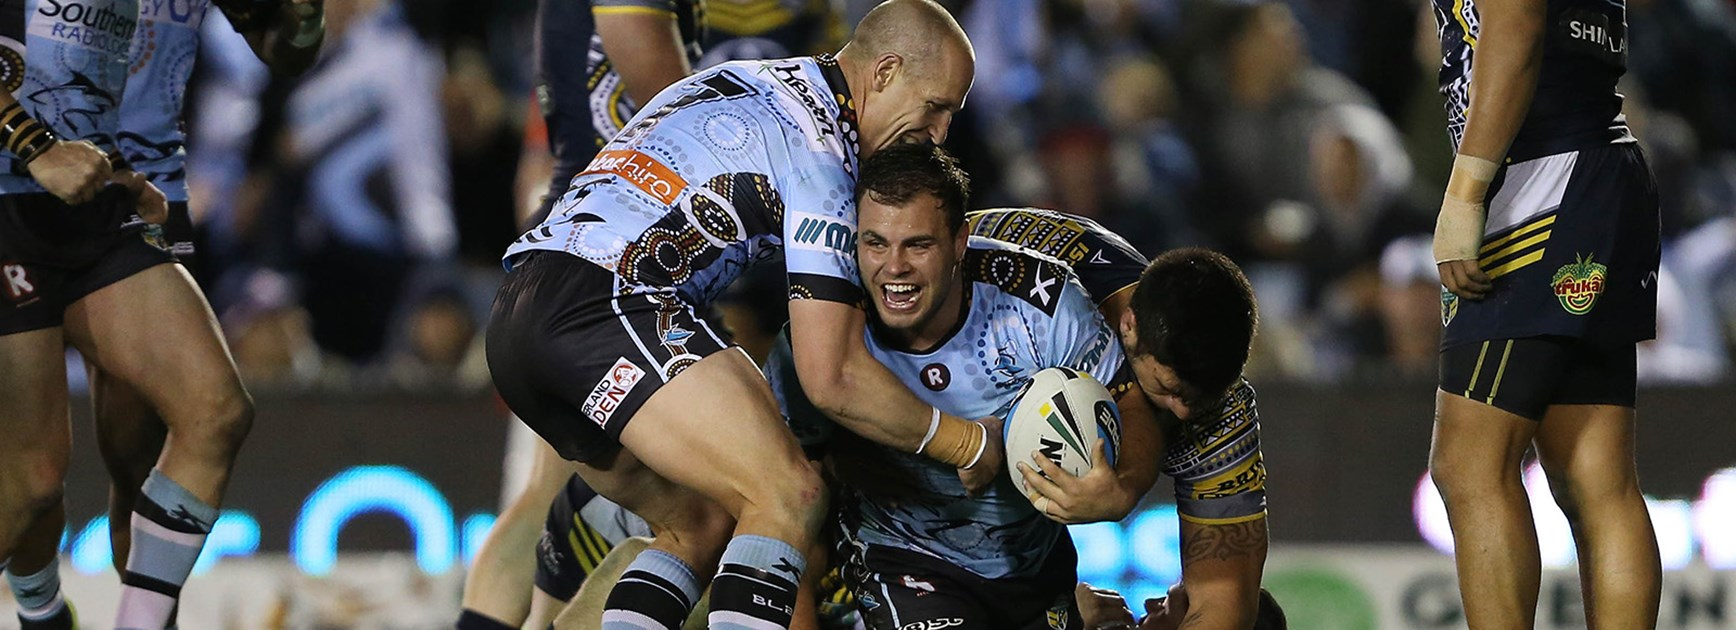 Wade Graham scores his first try of the season for the Sharks in the Round 22 clash with the Cowboys.